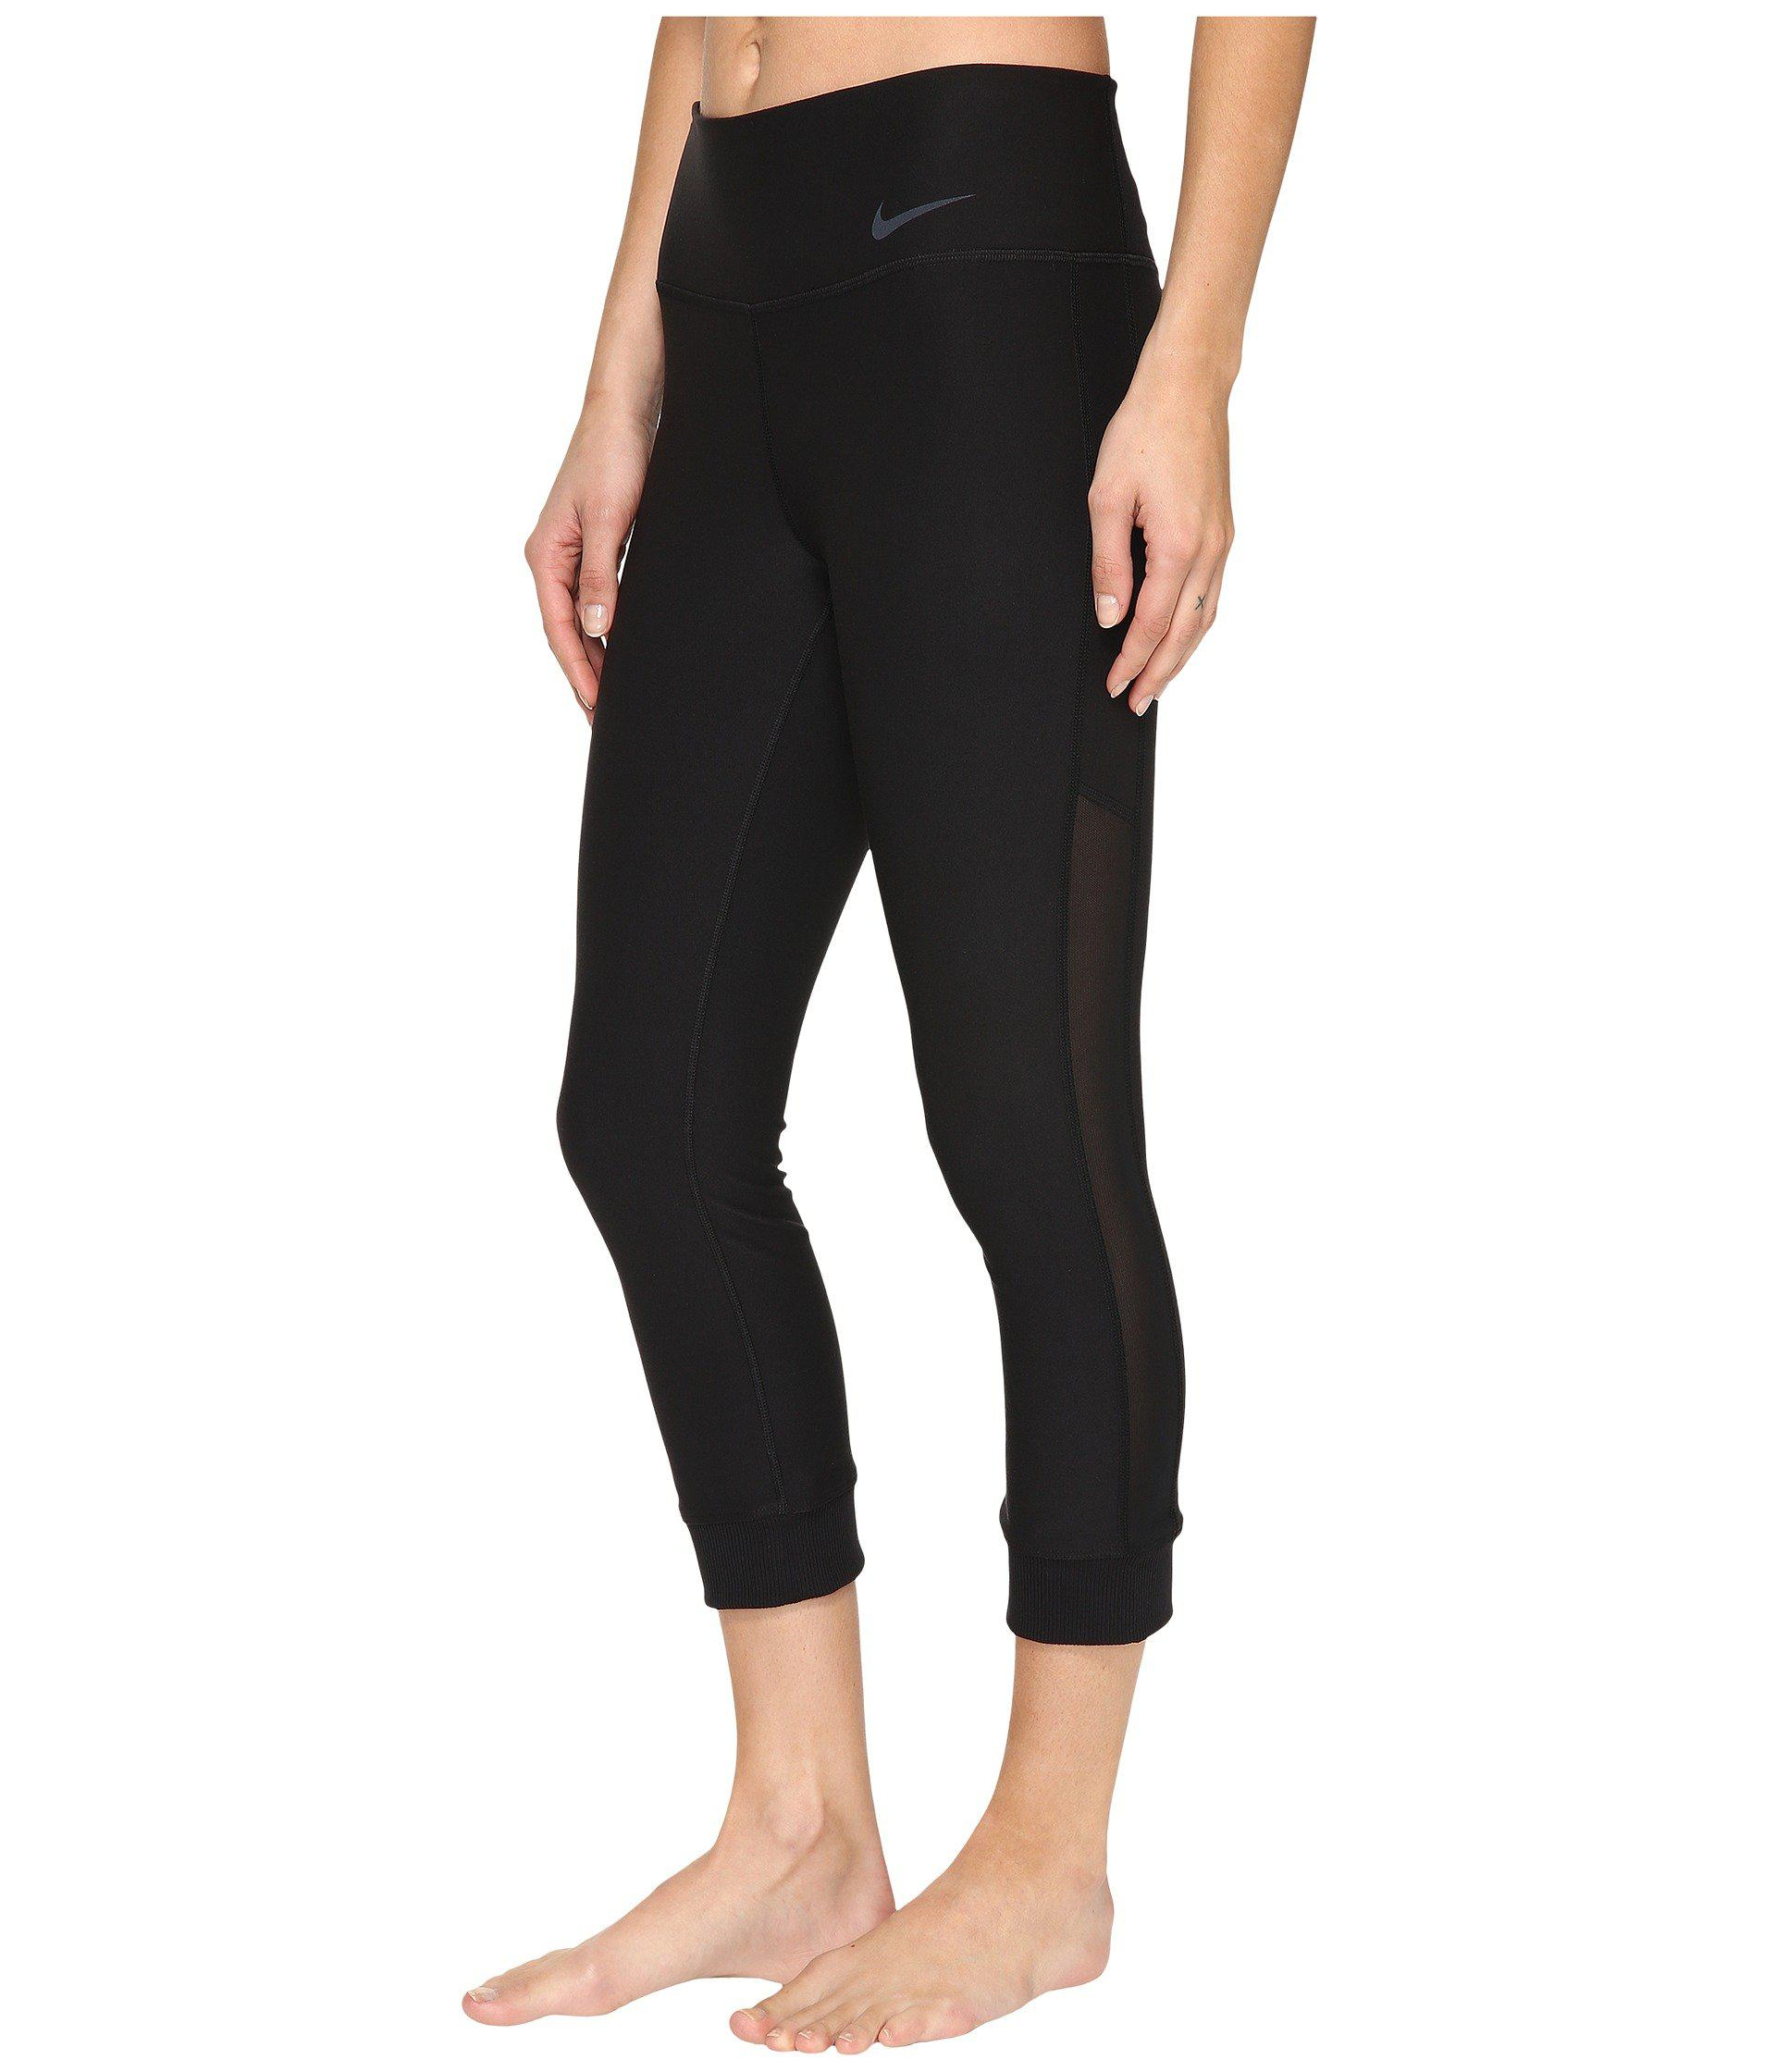 bfa5338c81661 Lyst - Nike Power Legend Veneer Training Capri in Black - Save 39%